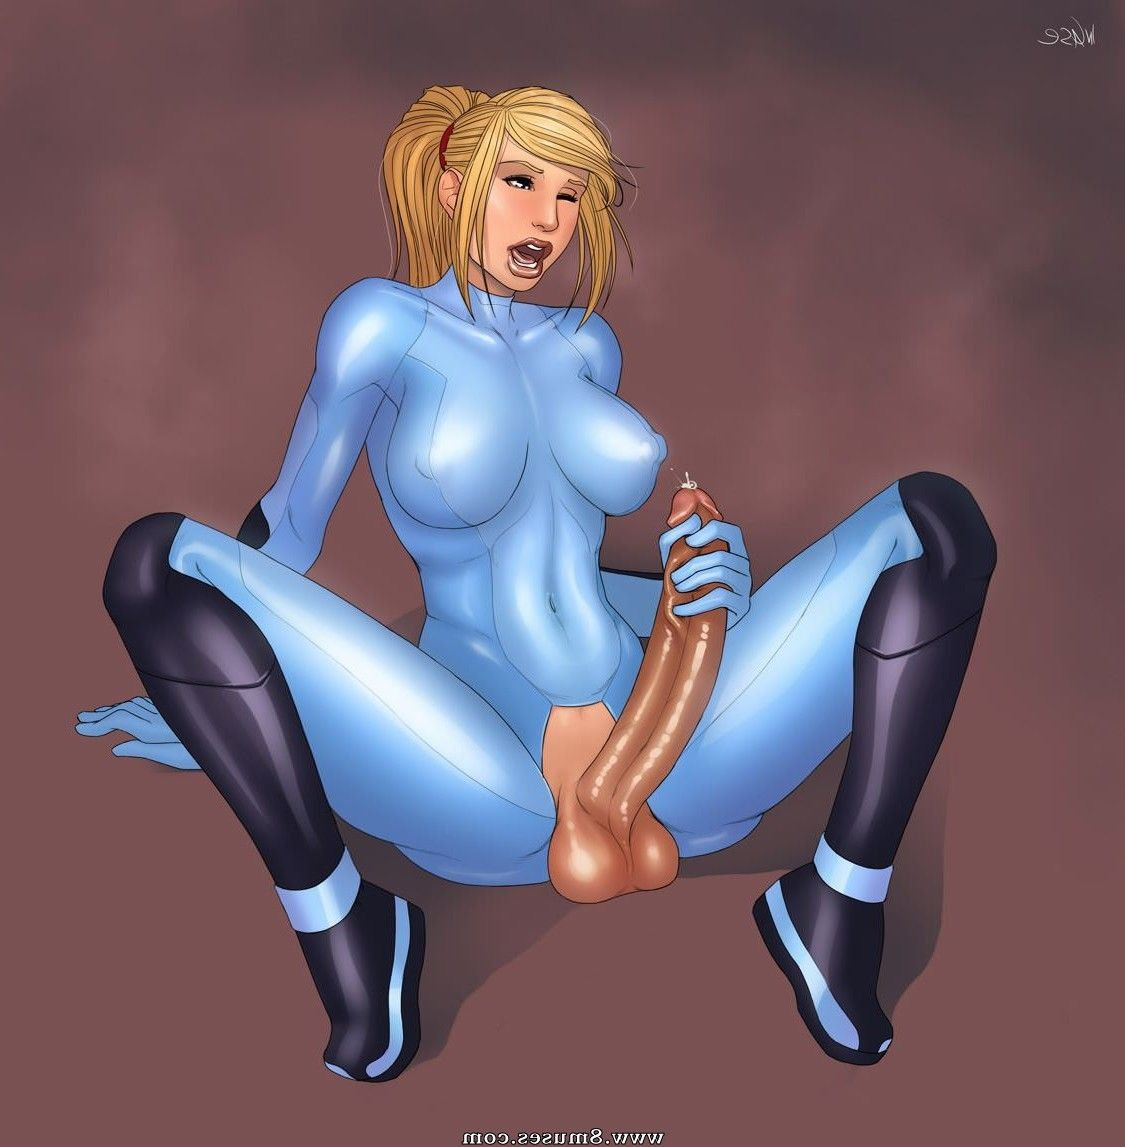 Incase-Comics/Artwork Artwork__8muses_-_Sex_and_Porn_Comics_81.jpg